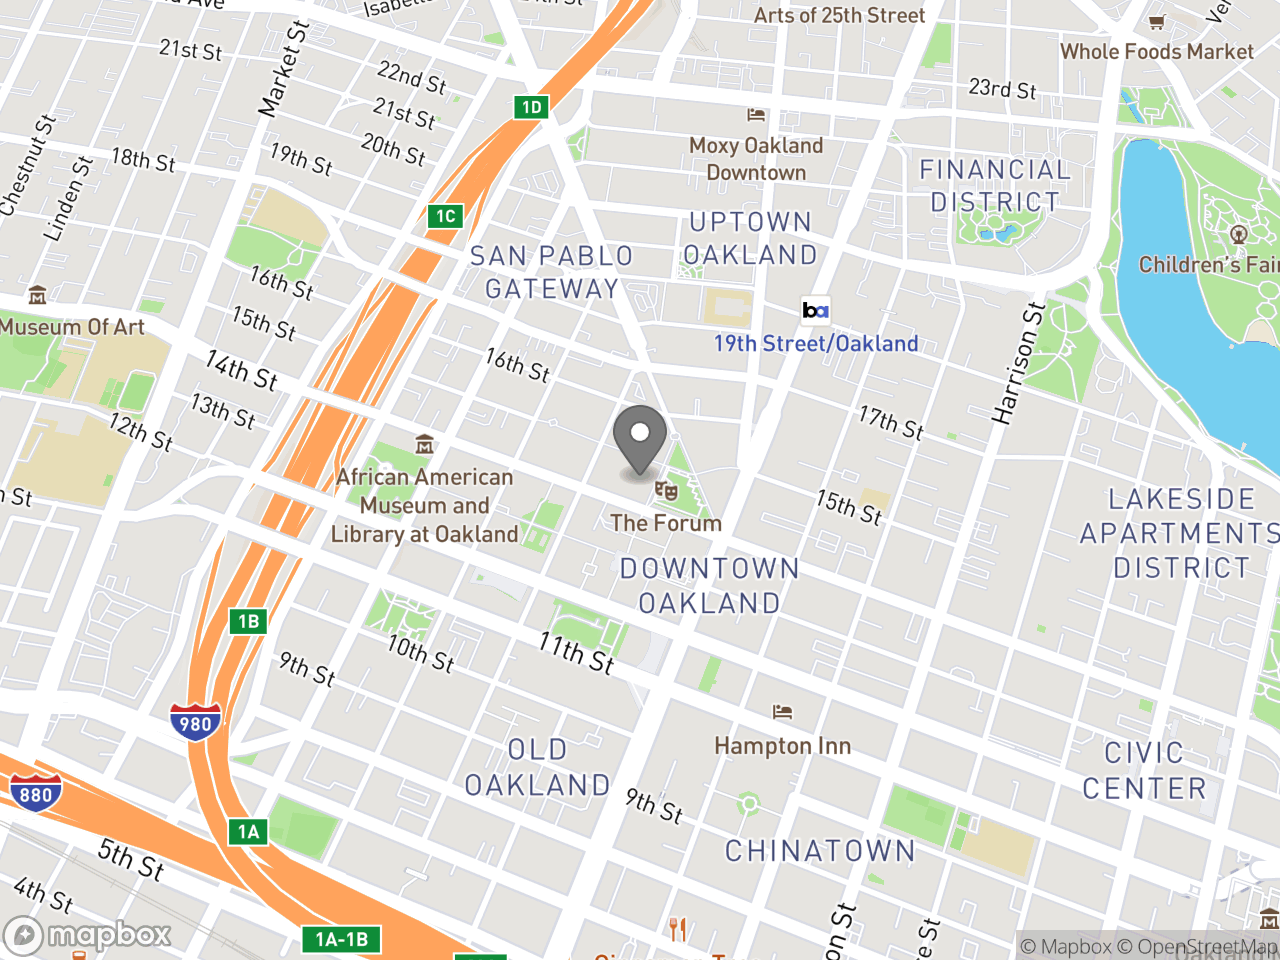 Map location for Civil Service Board, located at 1 Frank H Ogawa Plaza in Oakland, CA 94612